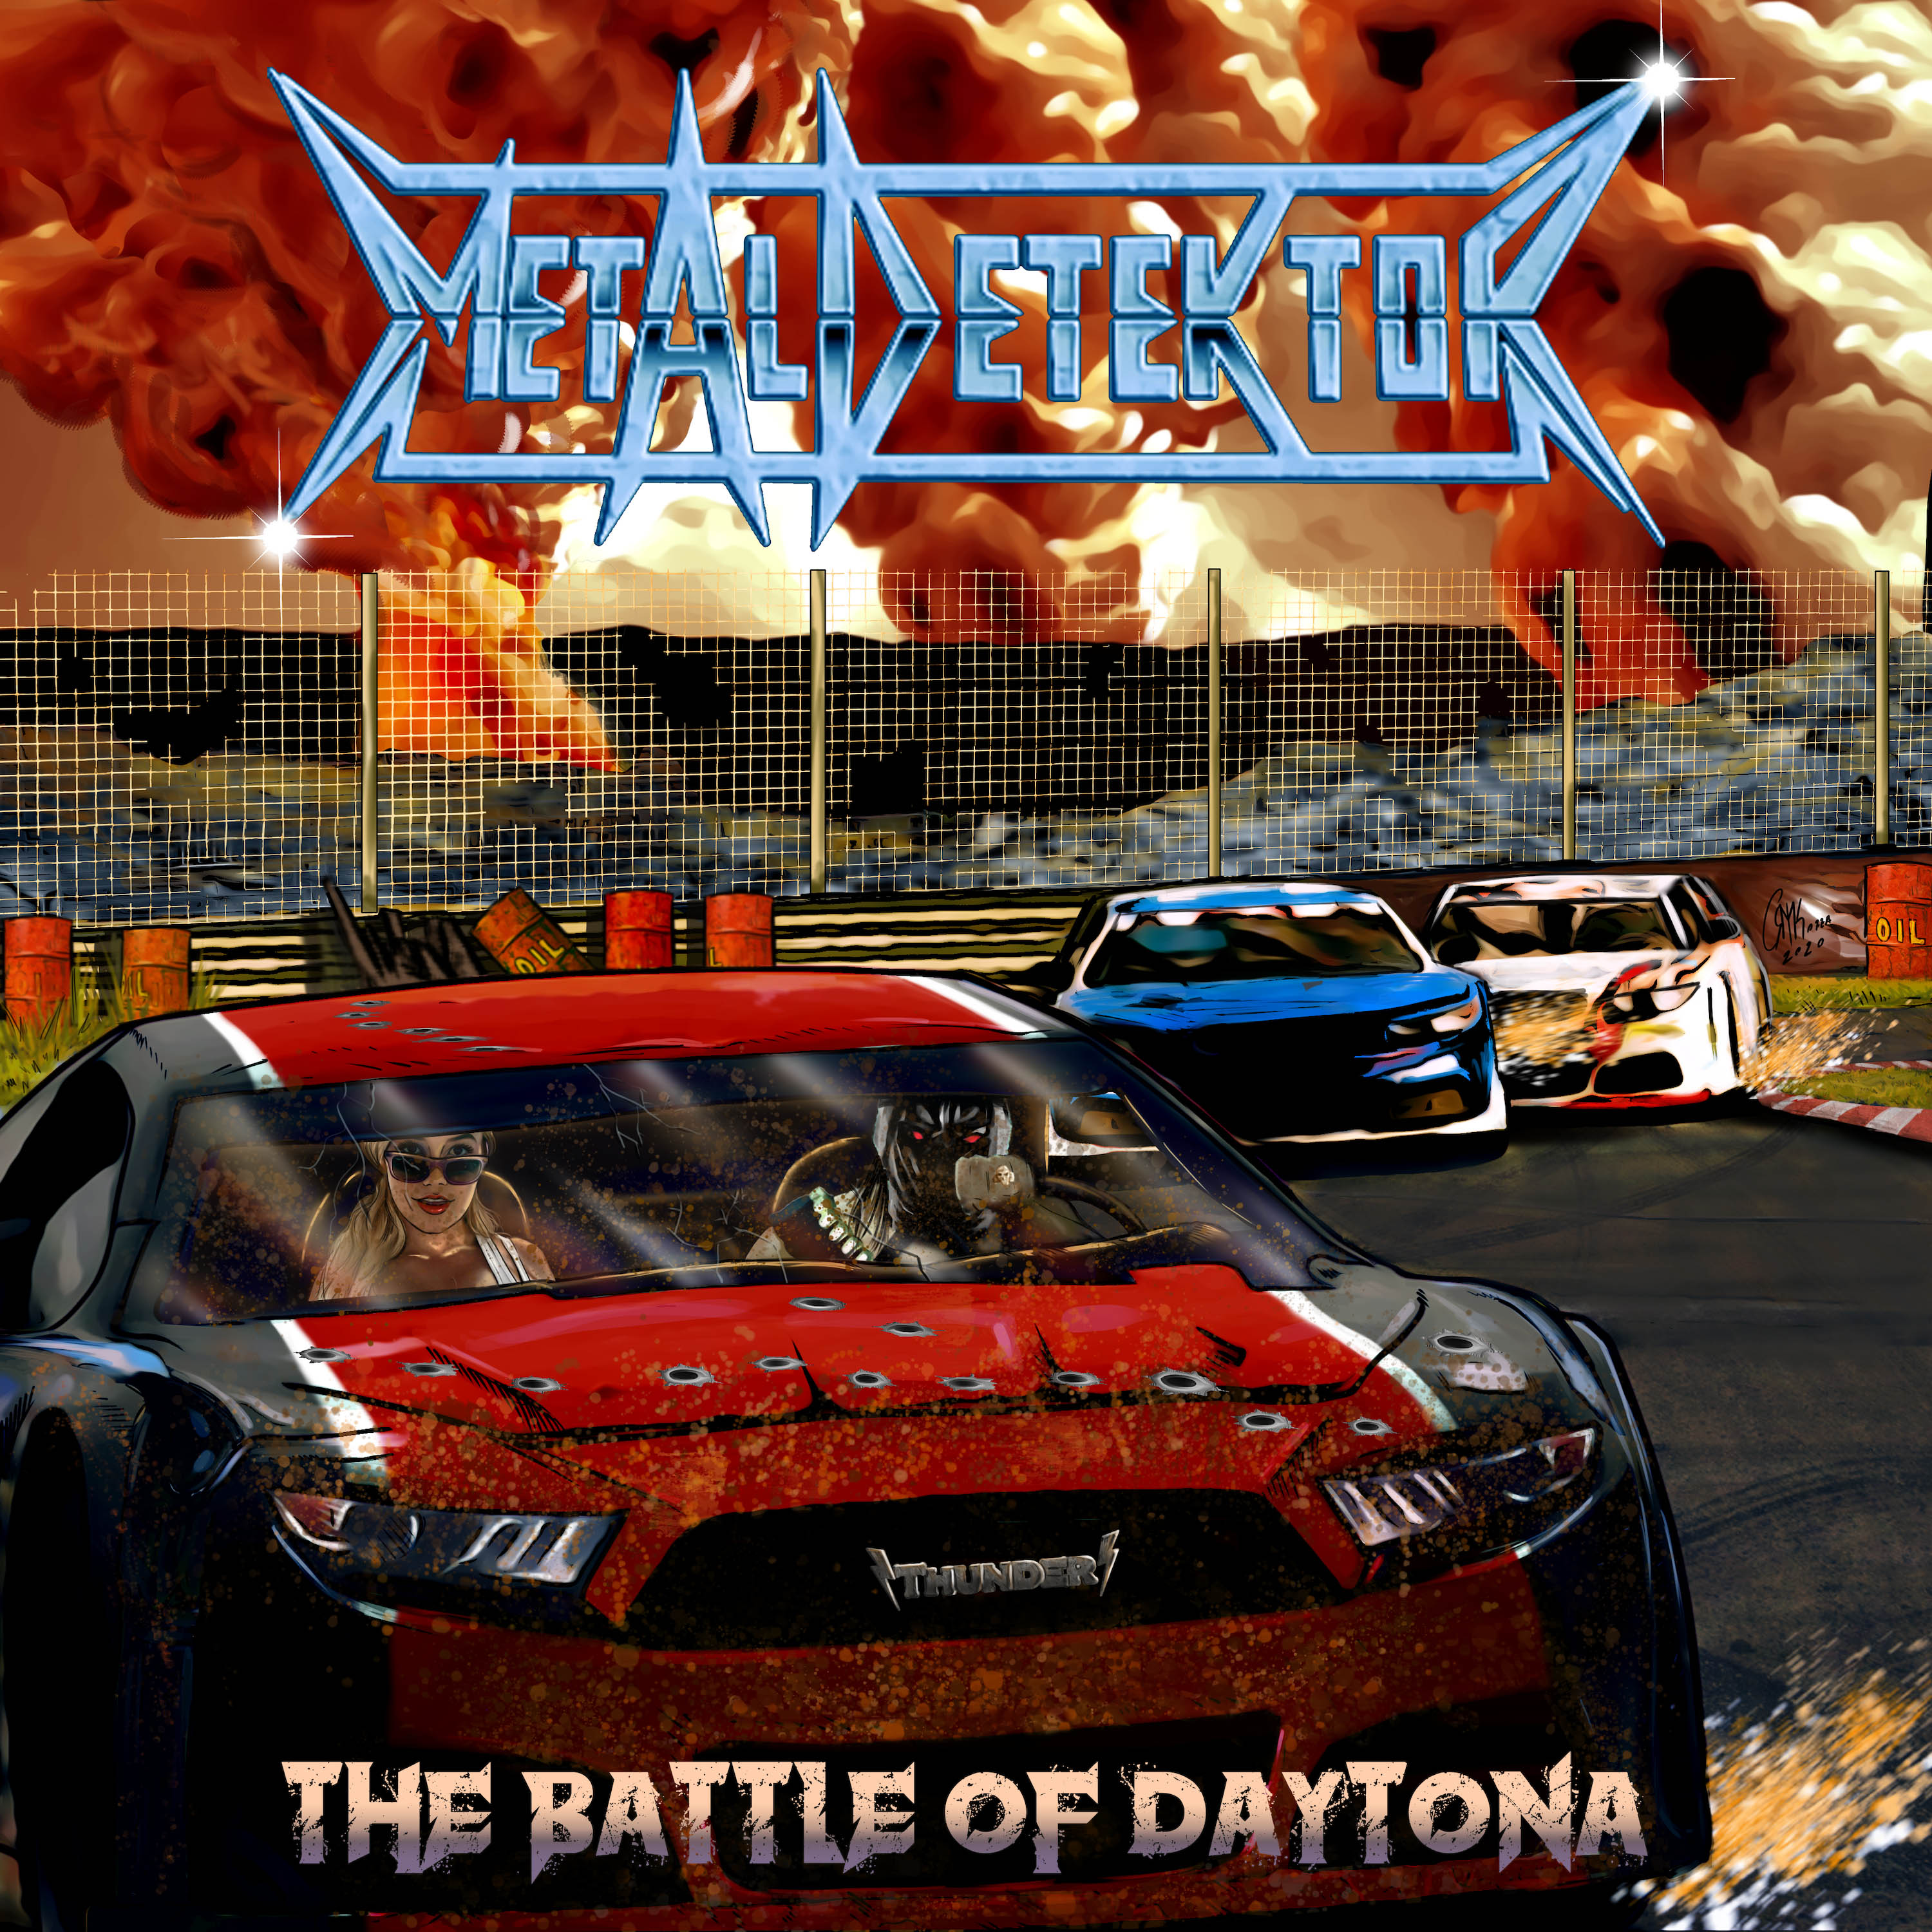 The Battle Of Daytona